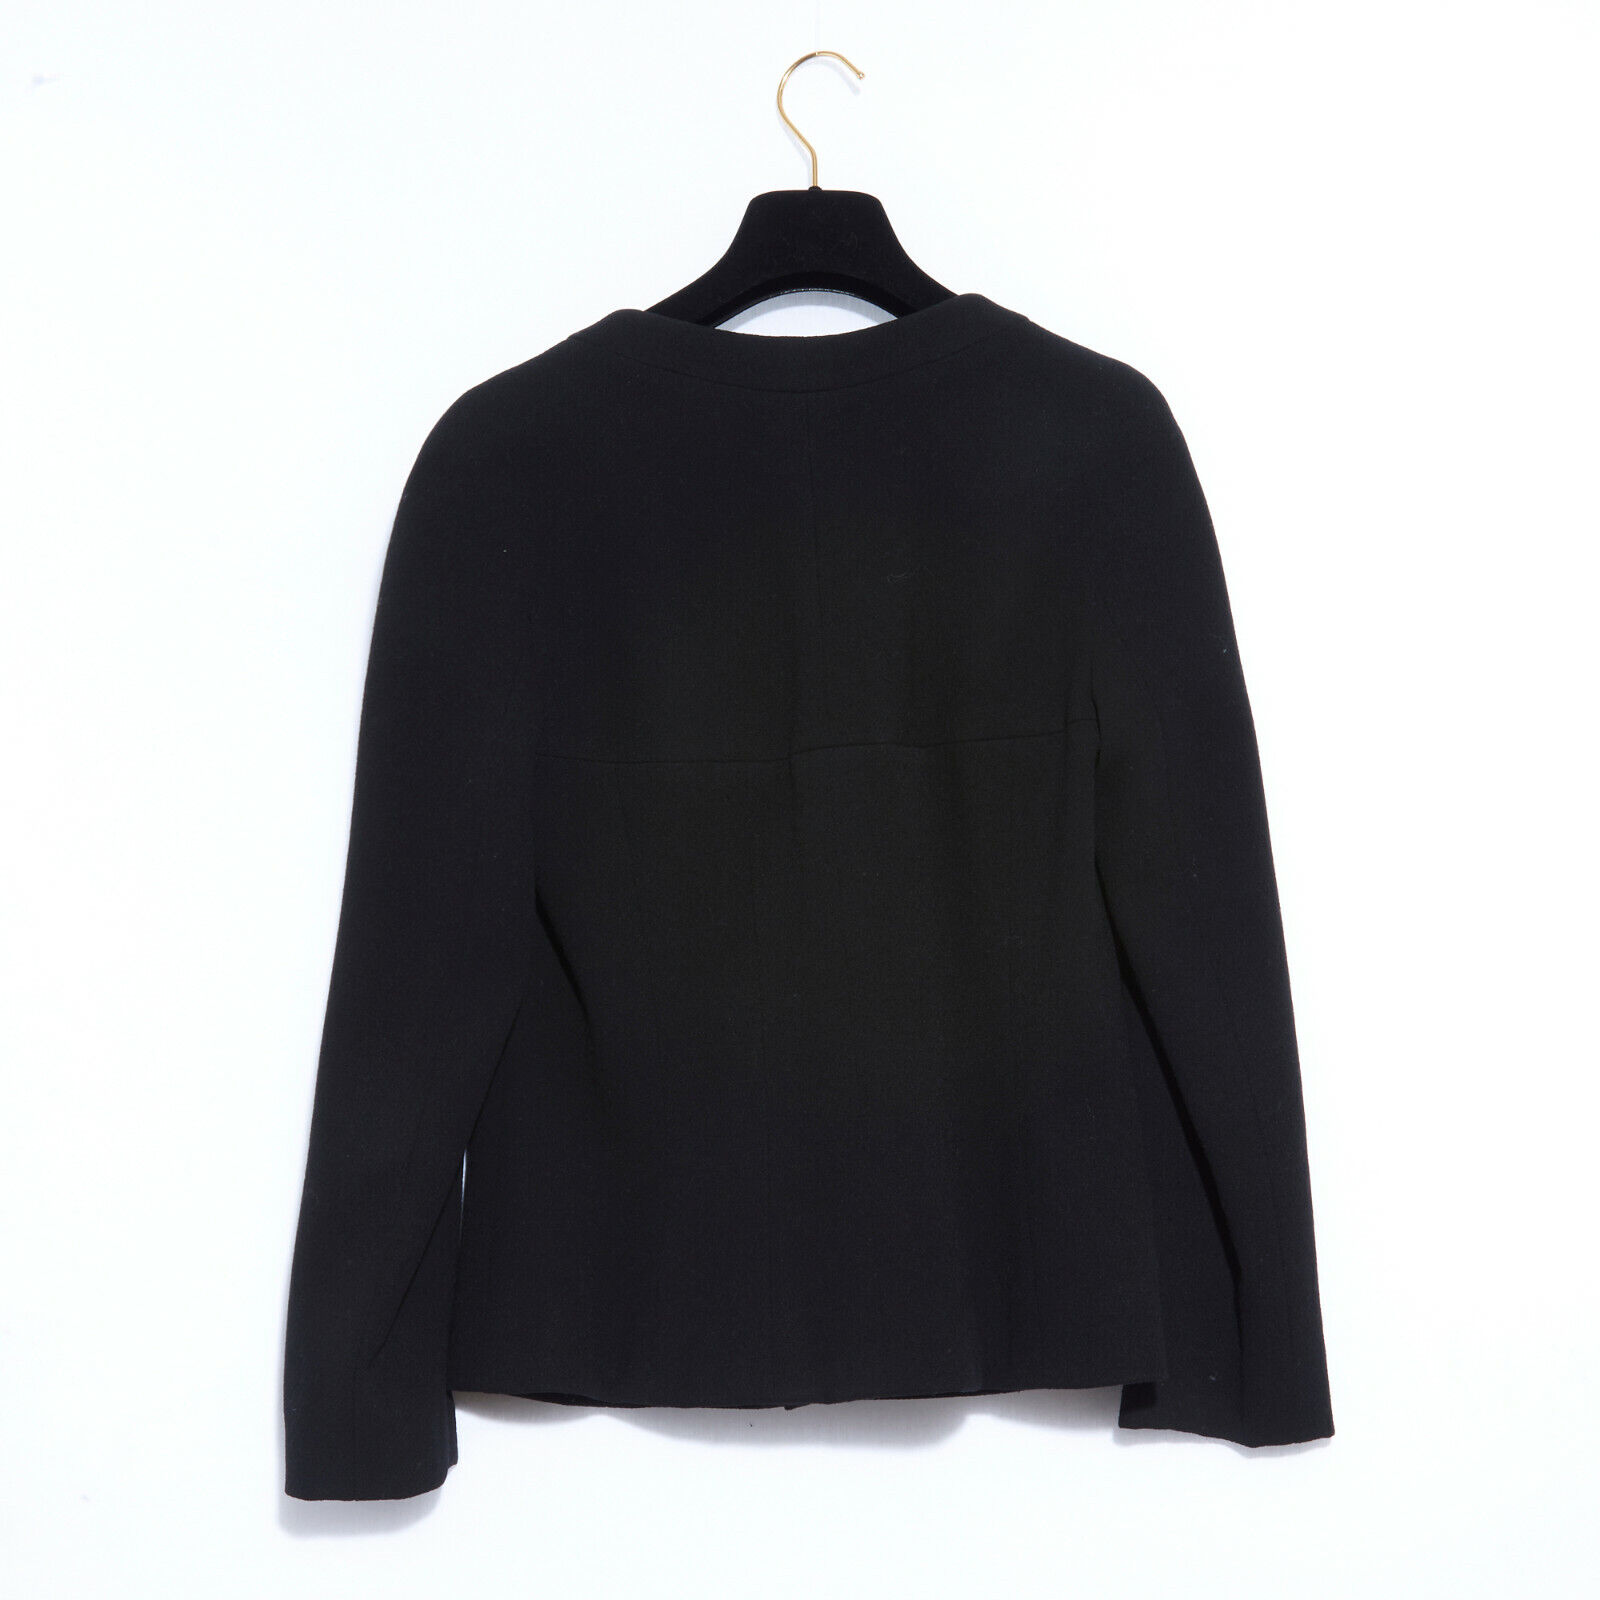 Chanel jacket black crepe fr38